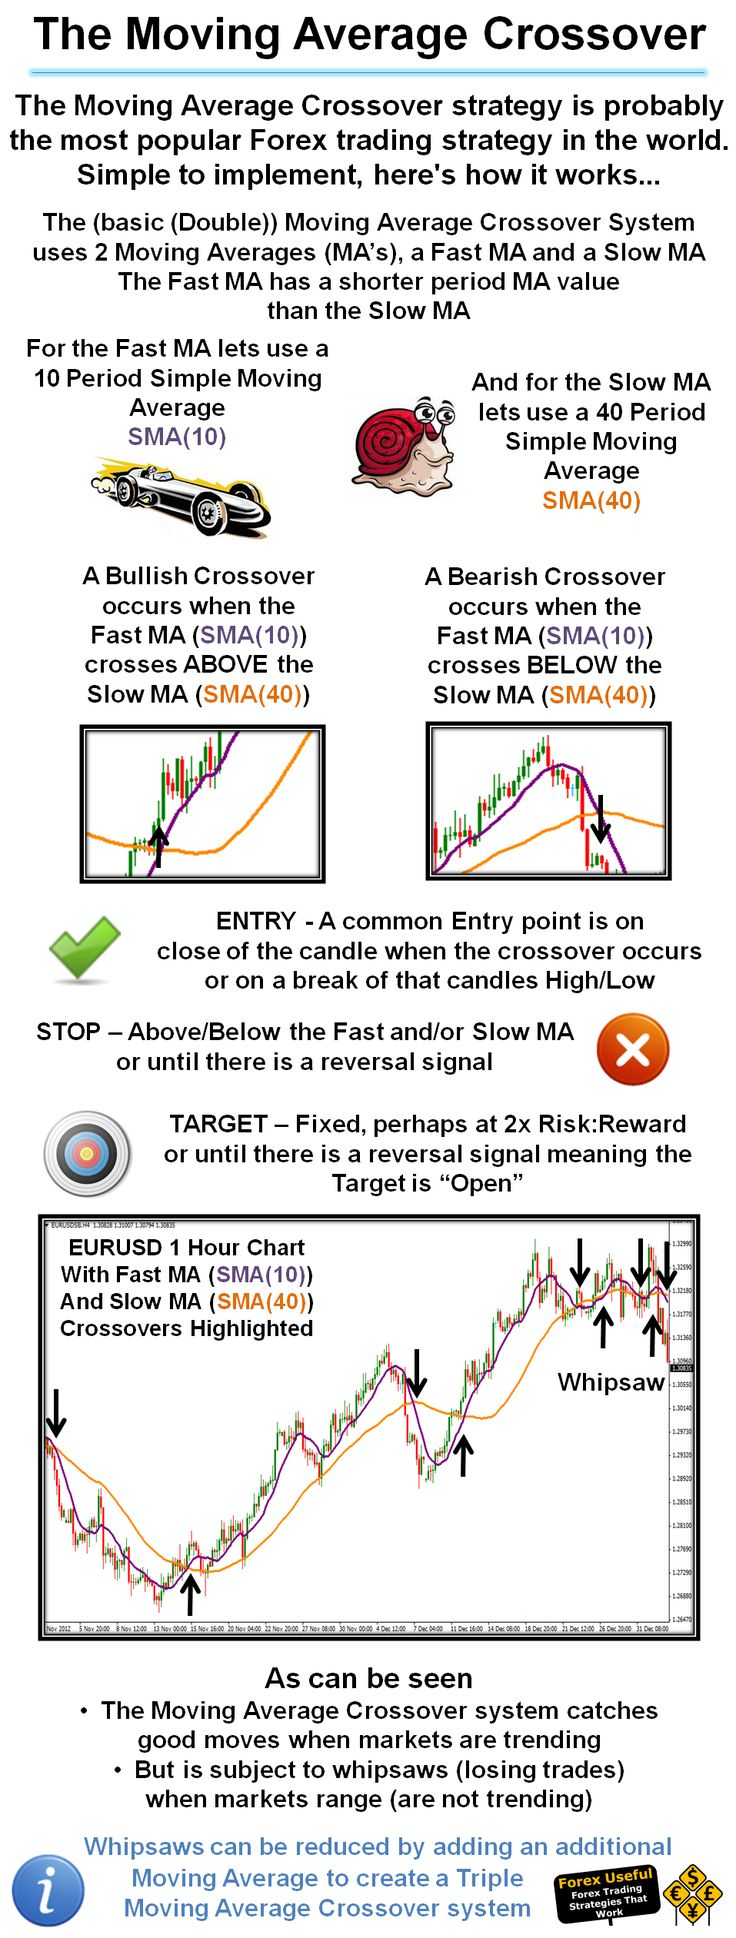 #ForexUseful - The Moving Average Crossover strategy is probably the most popular Forex trading strategy in the world. Simple to implement, here's how it works…